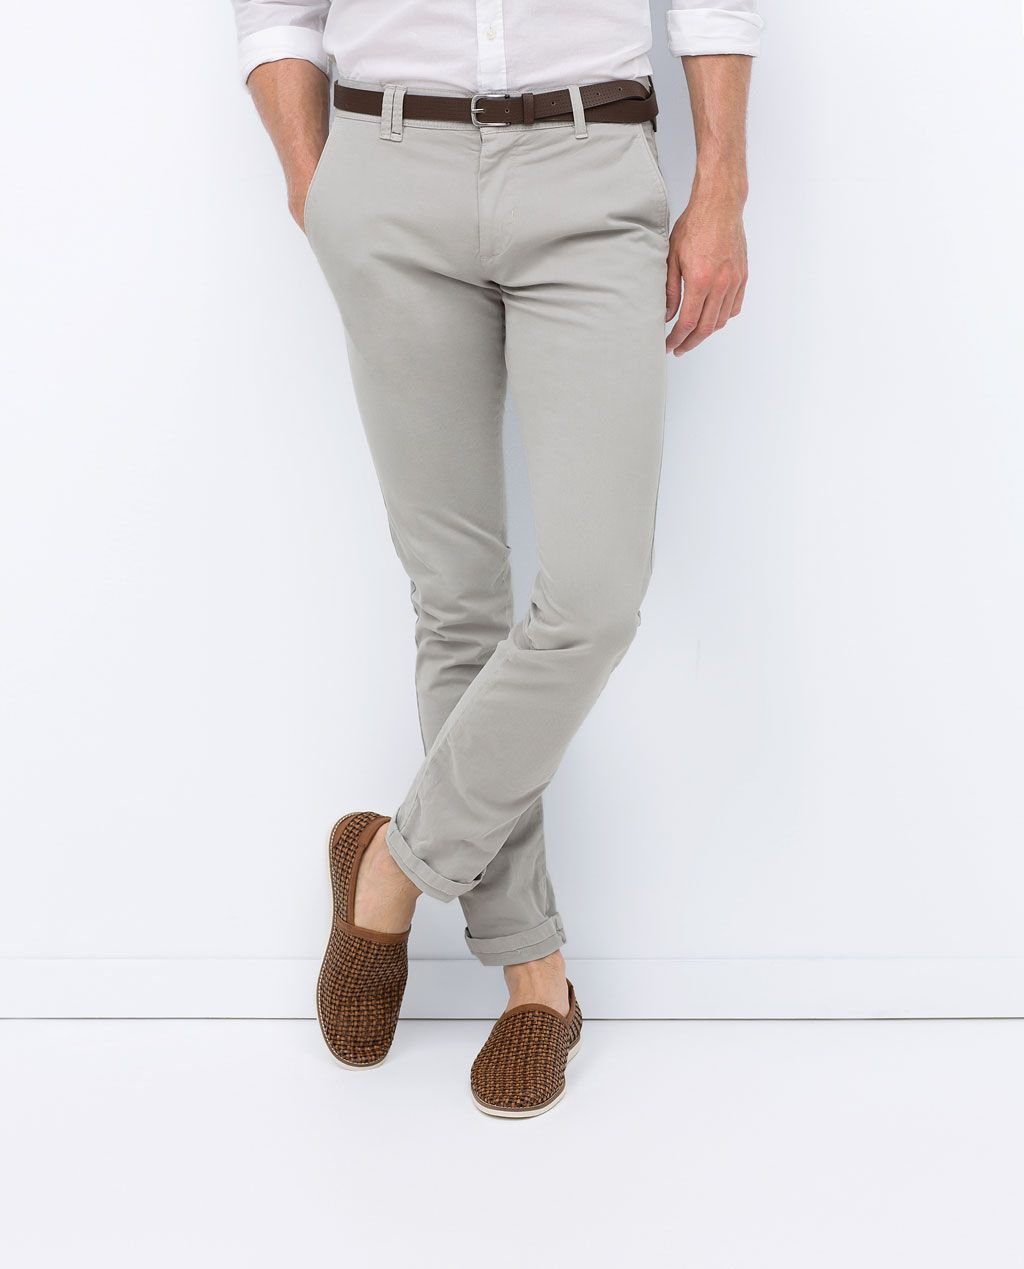 40b0d3d2e628d CHINOS WITH BELT-Chinos-Trousers-MAN | ZARA United States | Stuff ...